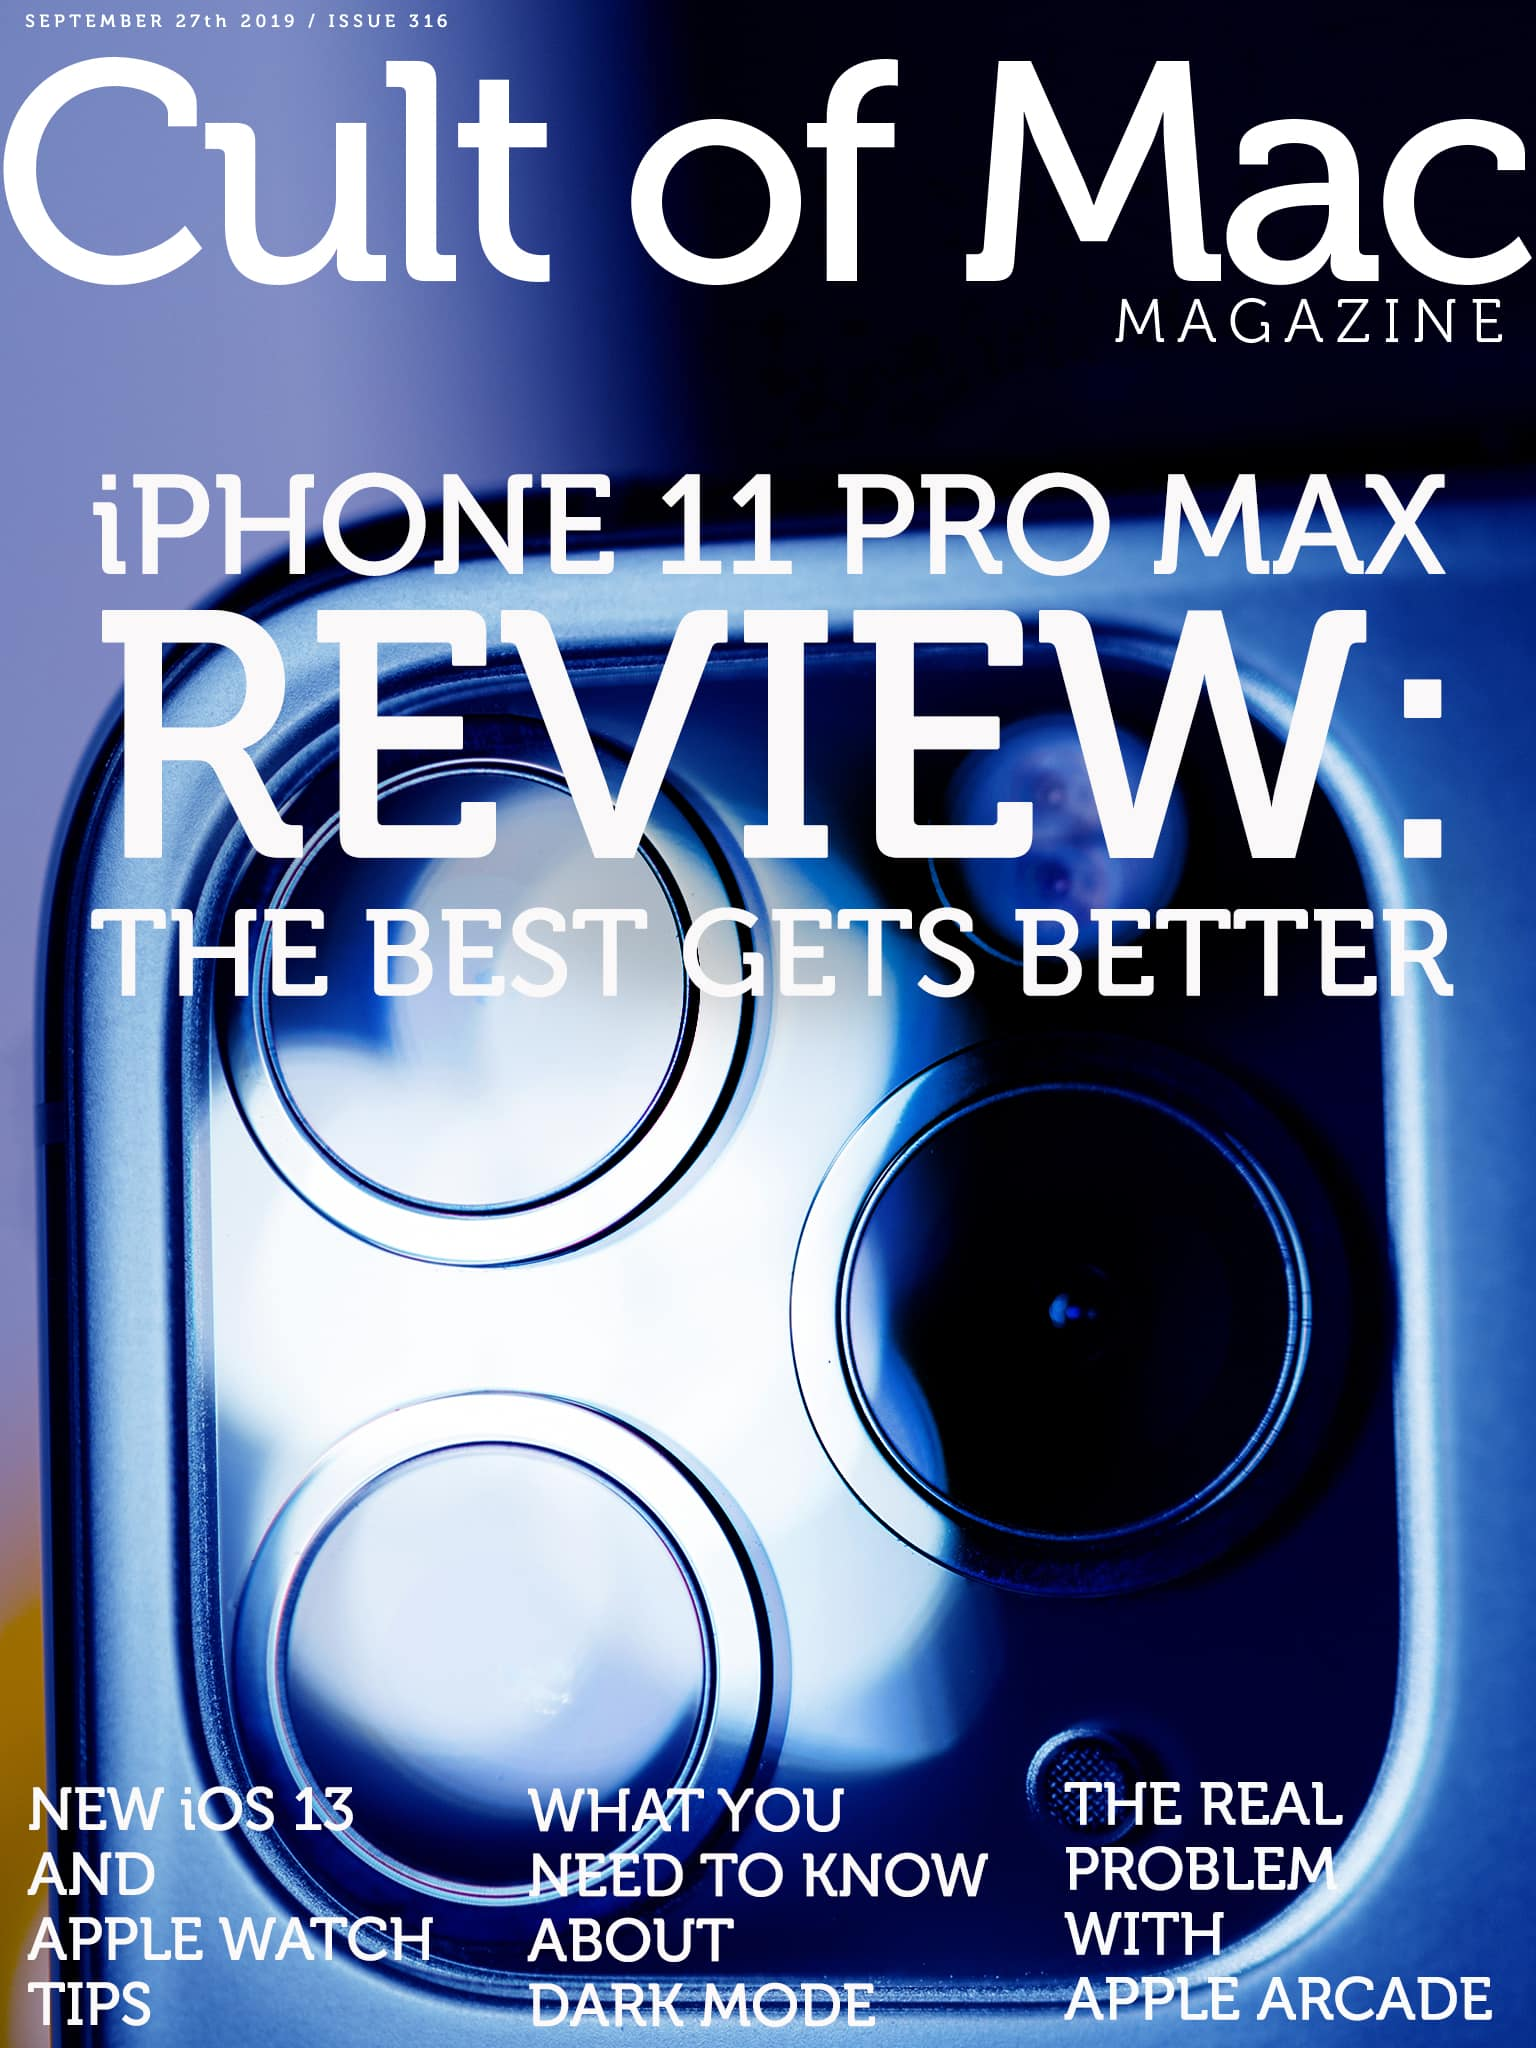 Hands down, the iPhone 11 Pro Max is our favorite iPhone yet.